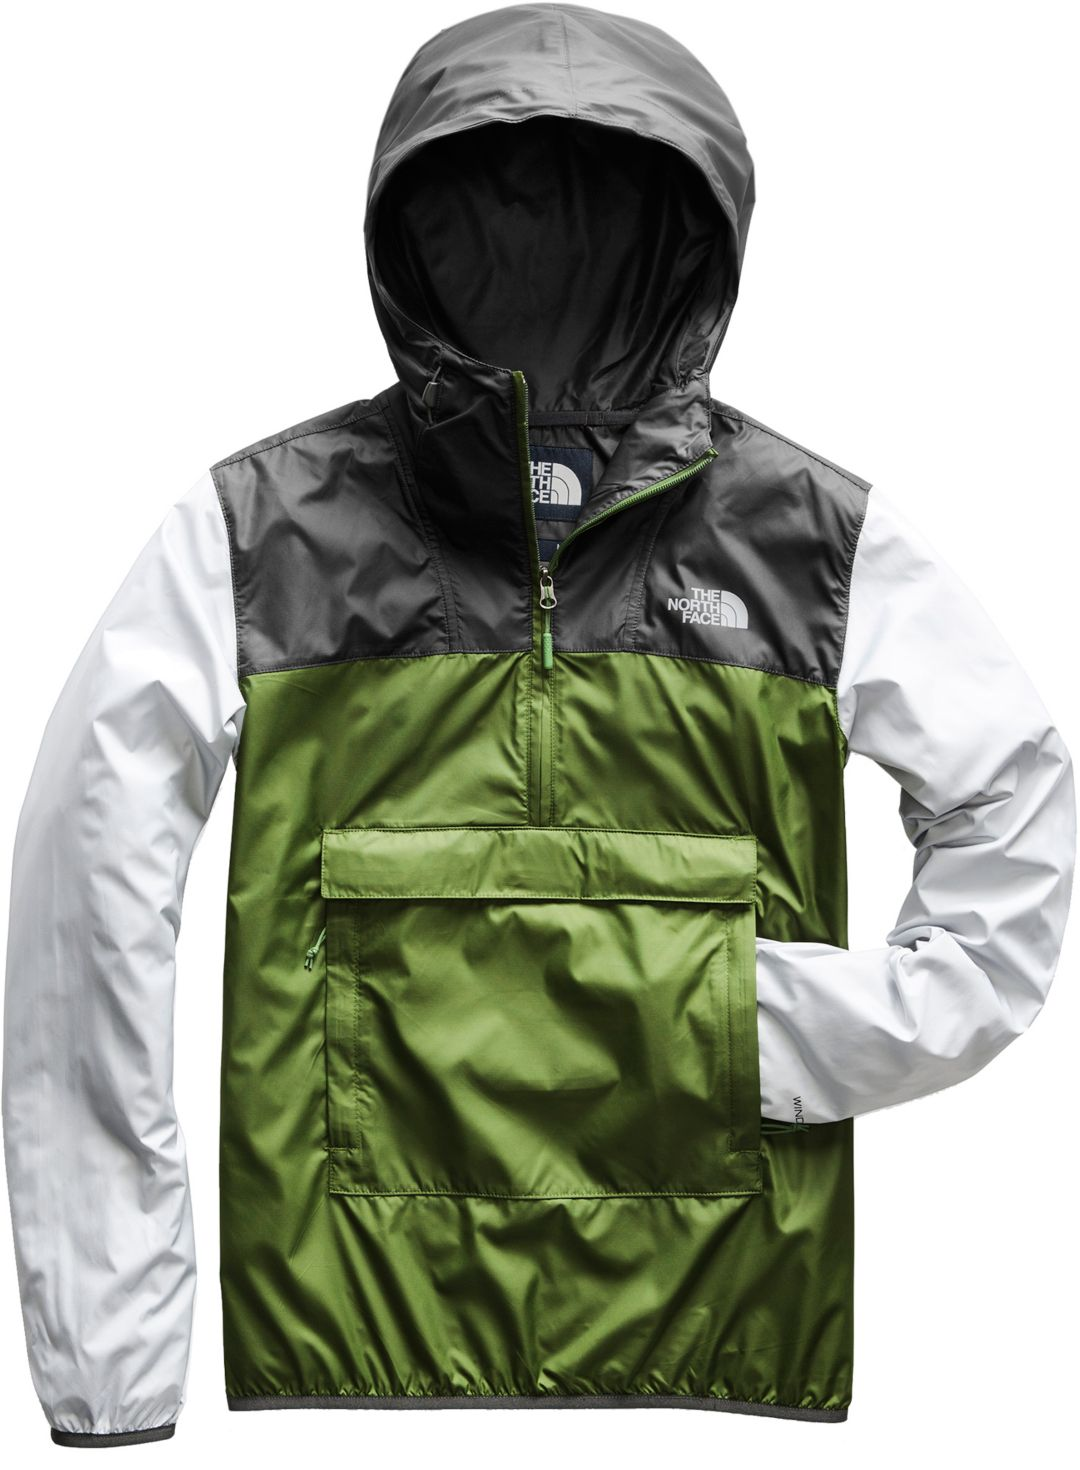 exclusive deals cheapest clearance prices The North Face Men's Fanorak Pullover Jacket